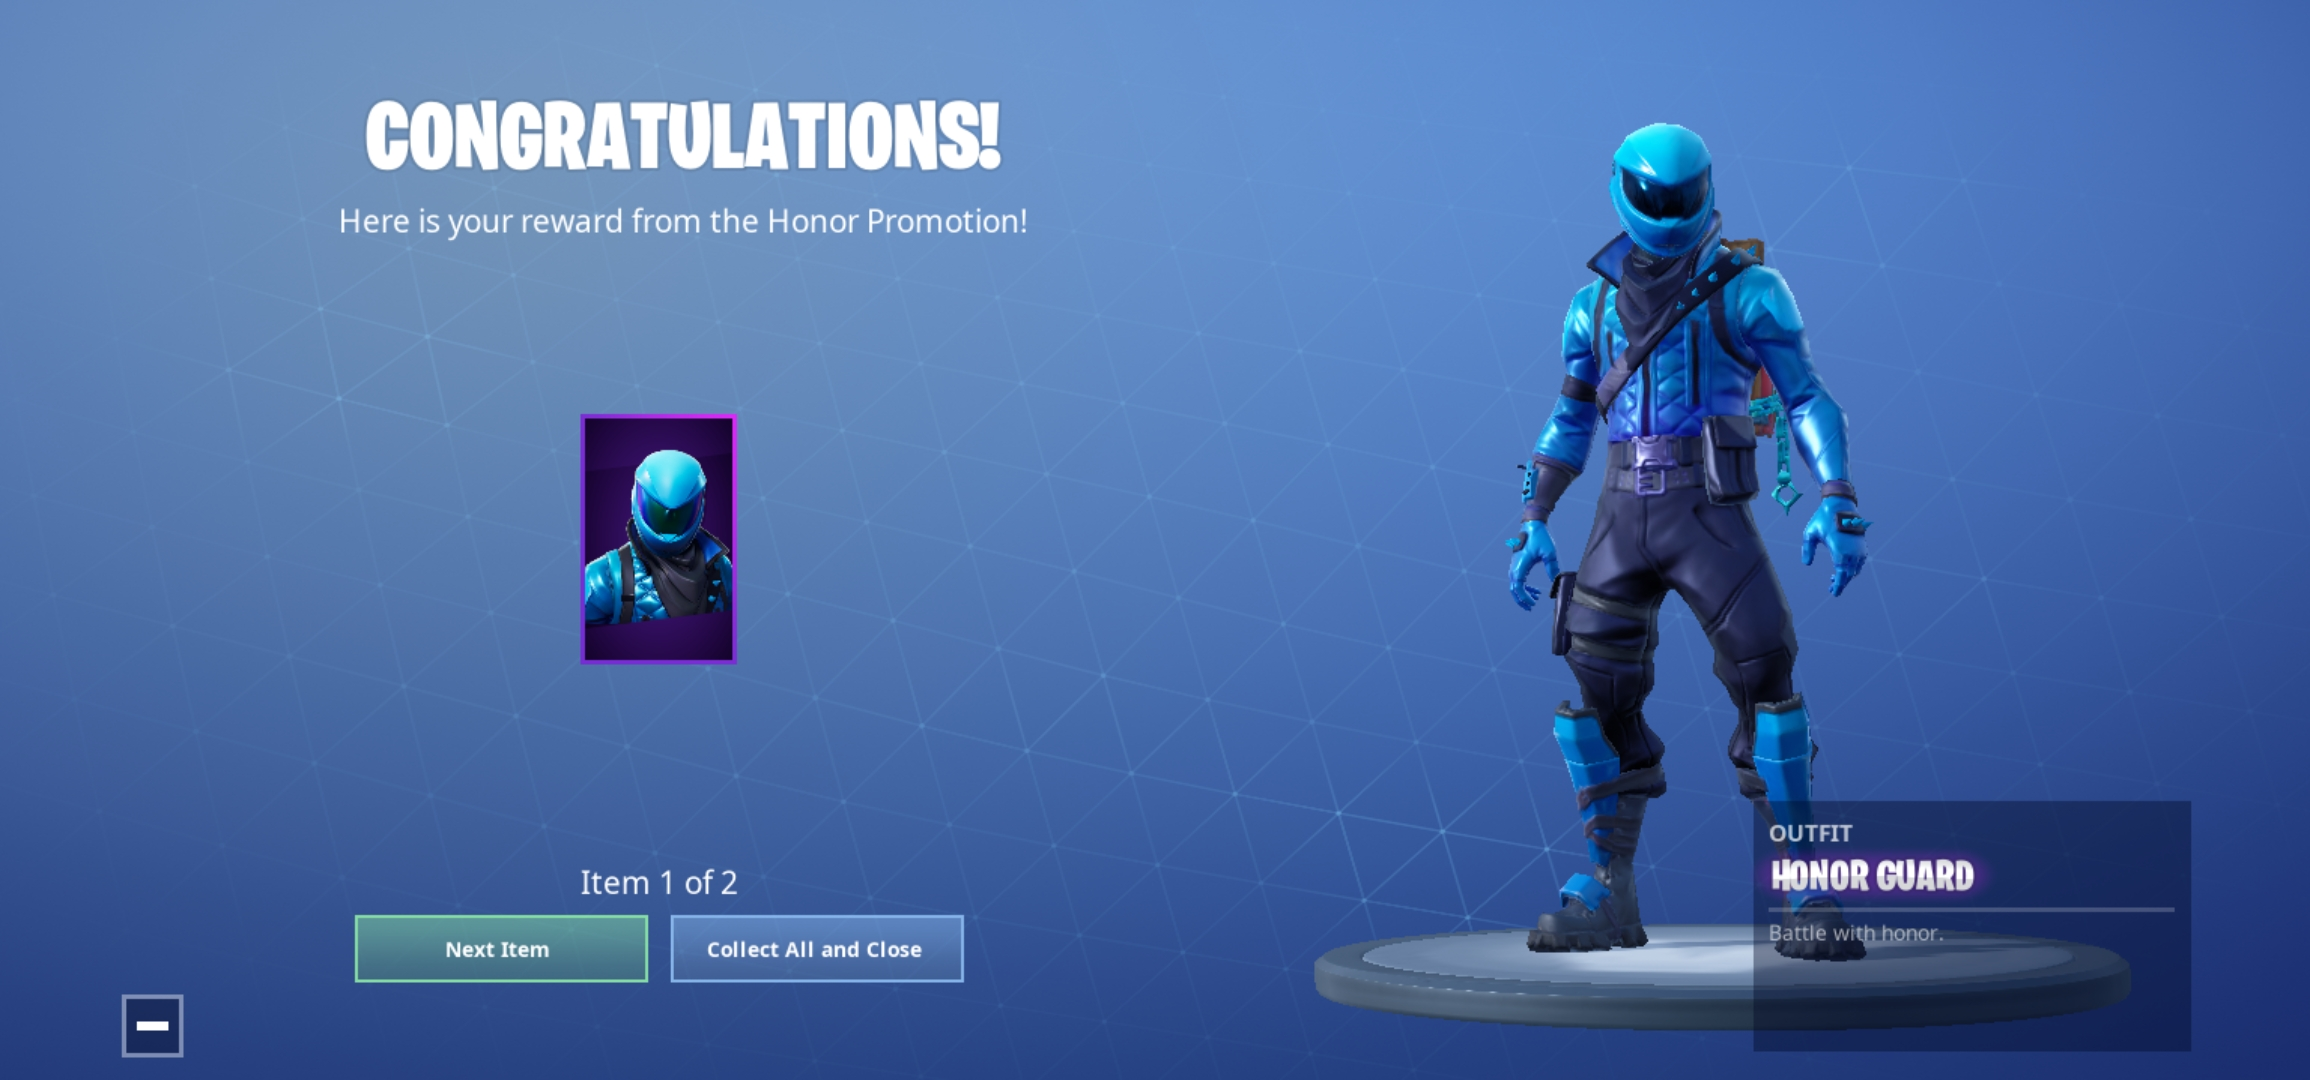 Has your Fortnite Honor Guard gone? Don't worry, here's what to do